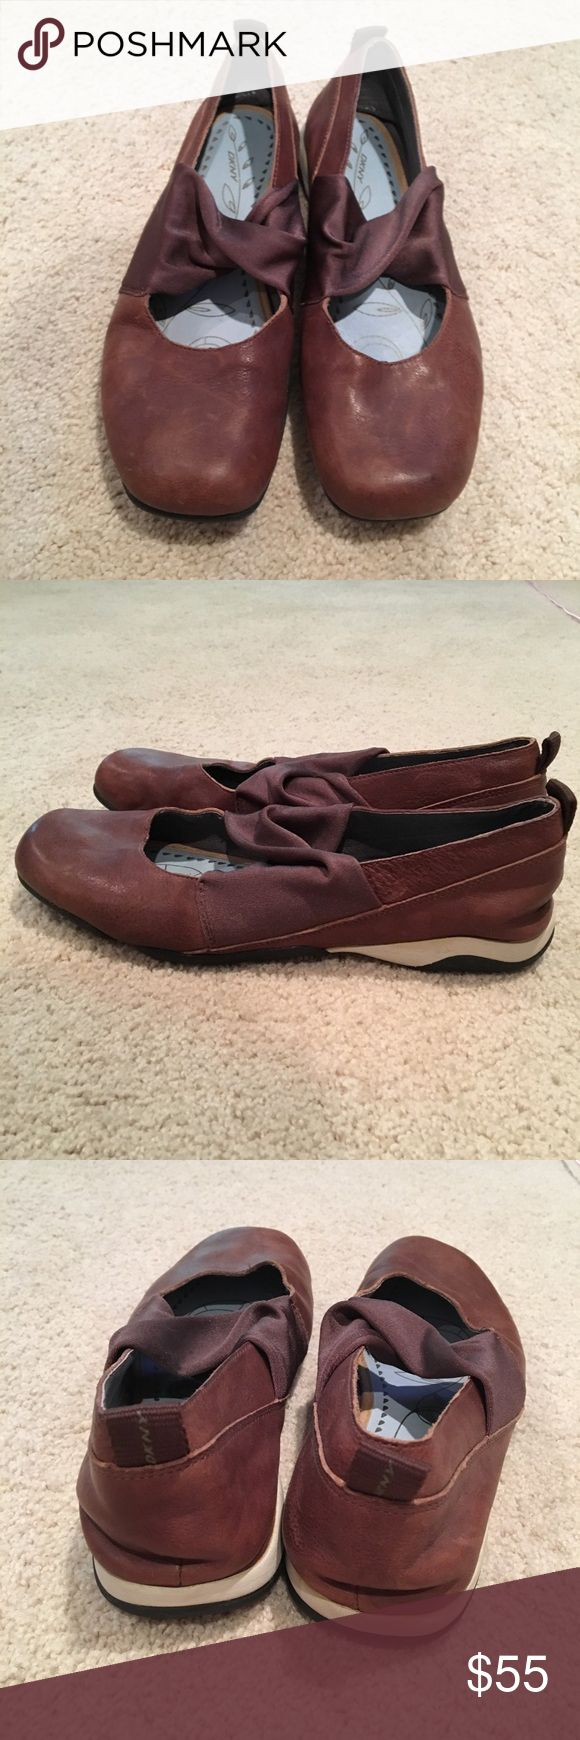 DKNY Comfort Ballet Flats Tan Brown 8 These DKNY flats are like new and have only been worn a few times. The insole is cushioned for extra comfort and support. Size 8. Bundle and save! Dkny Shoes Flats & Loafers